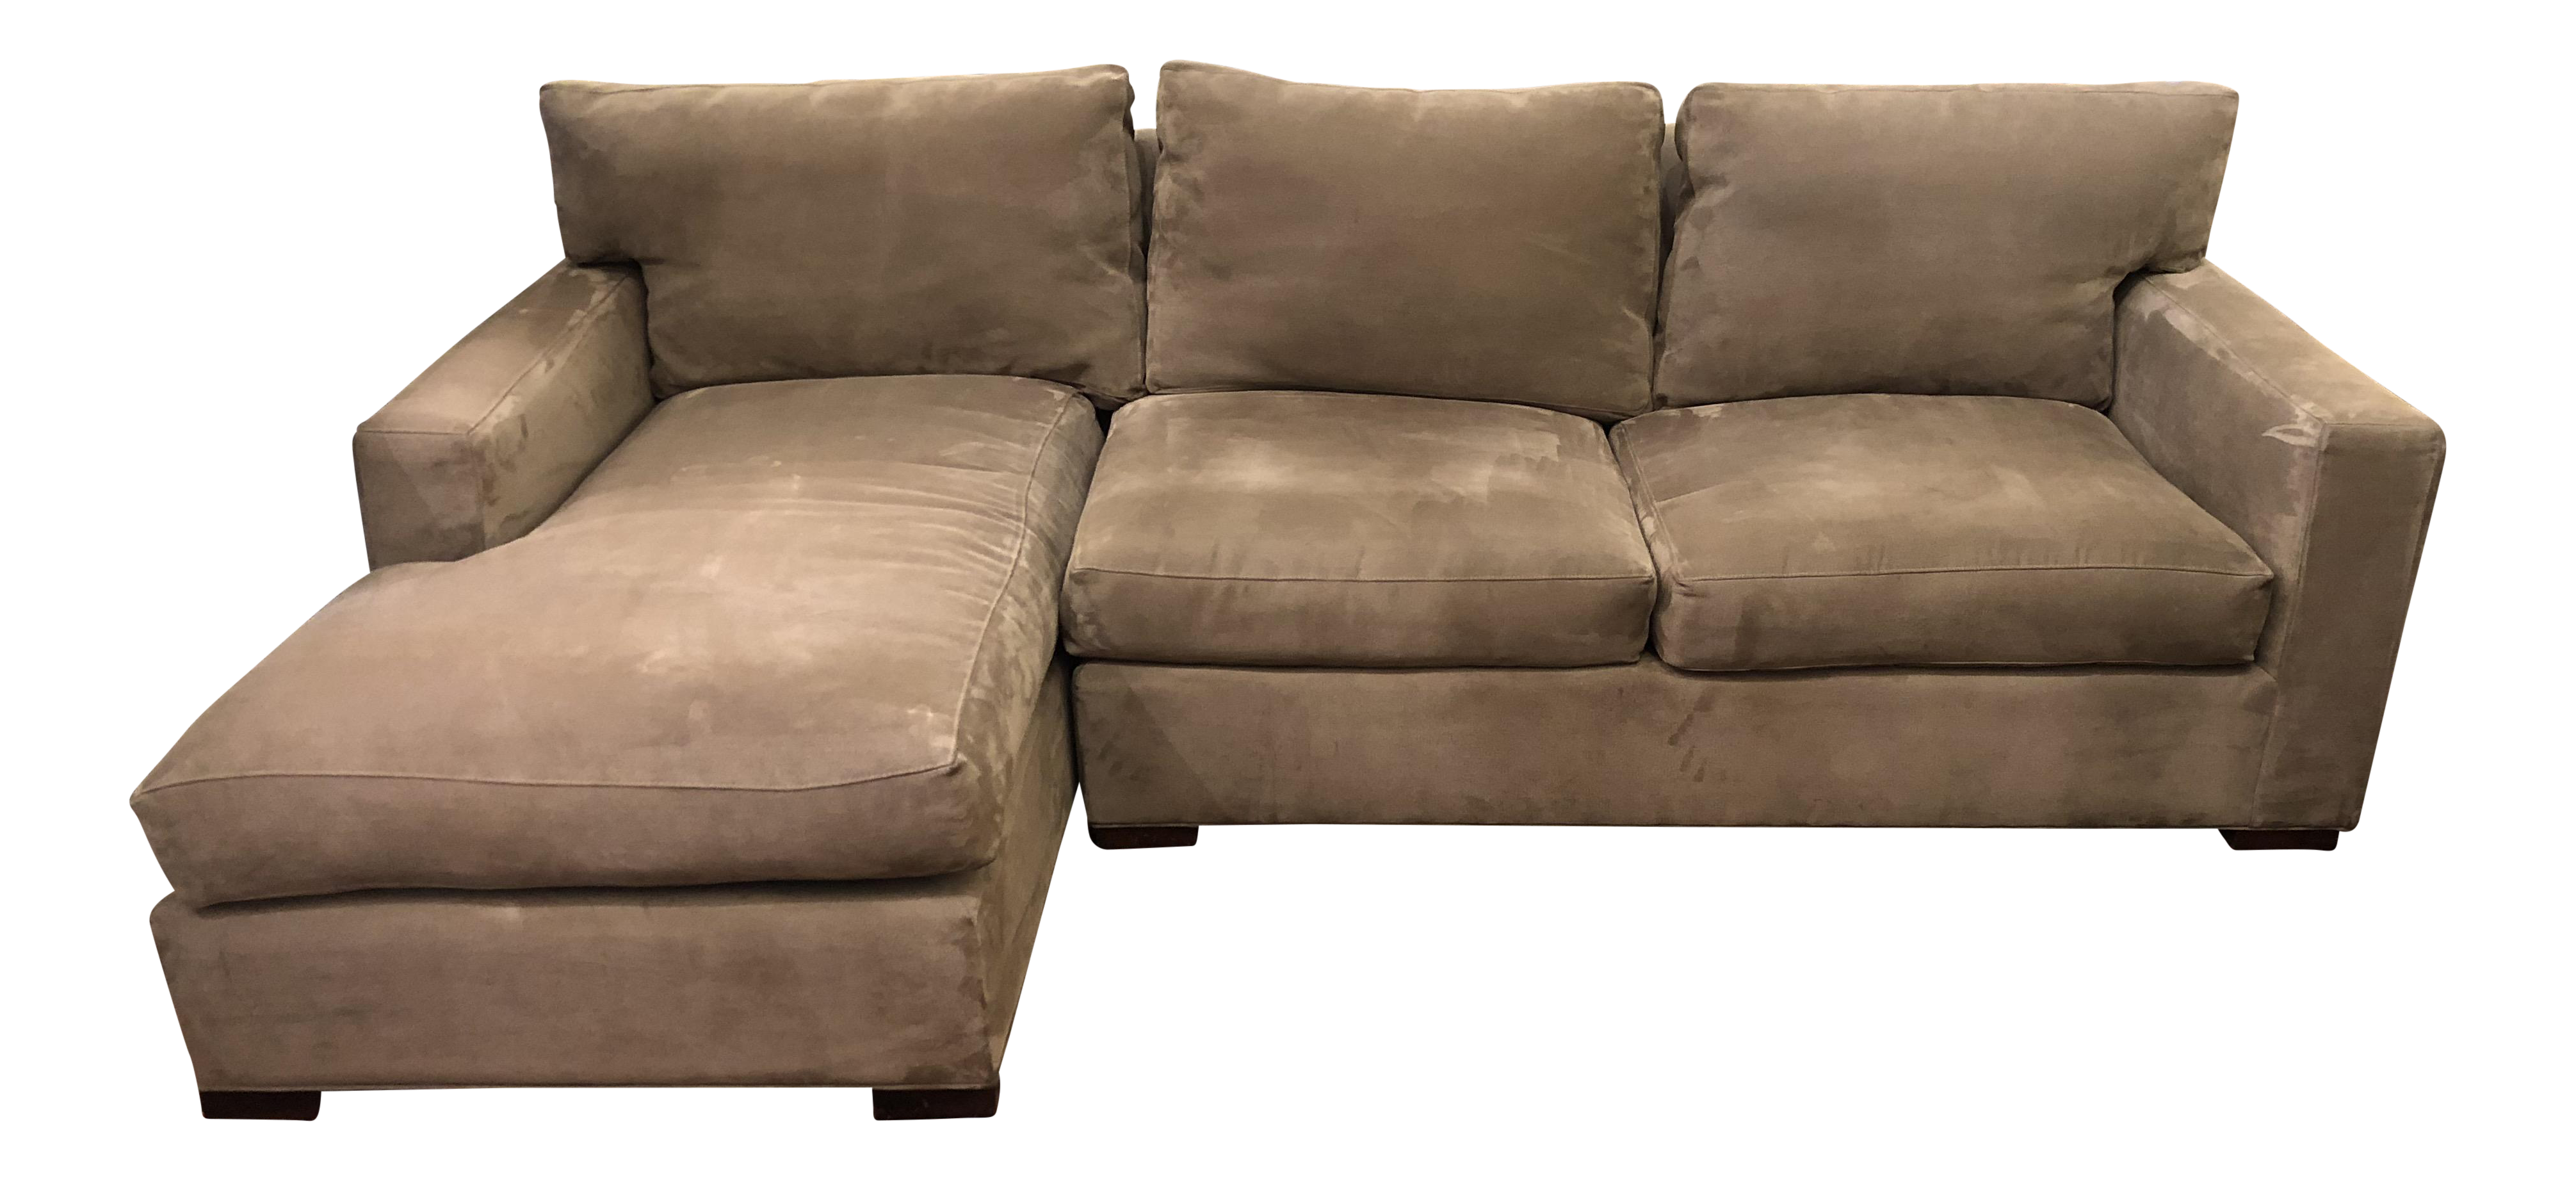 Modern Crate \u0026 Barrel Axis II Sectional Sofa - 2 Pieces  sc 1 st  Chairish & Gently Used Crate \u0026 Barrel Furniture   Up to 40% off at Chairish